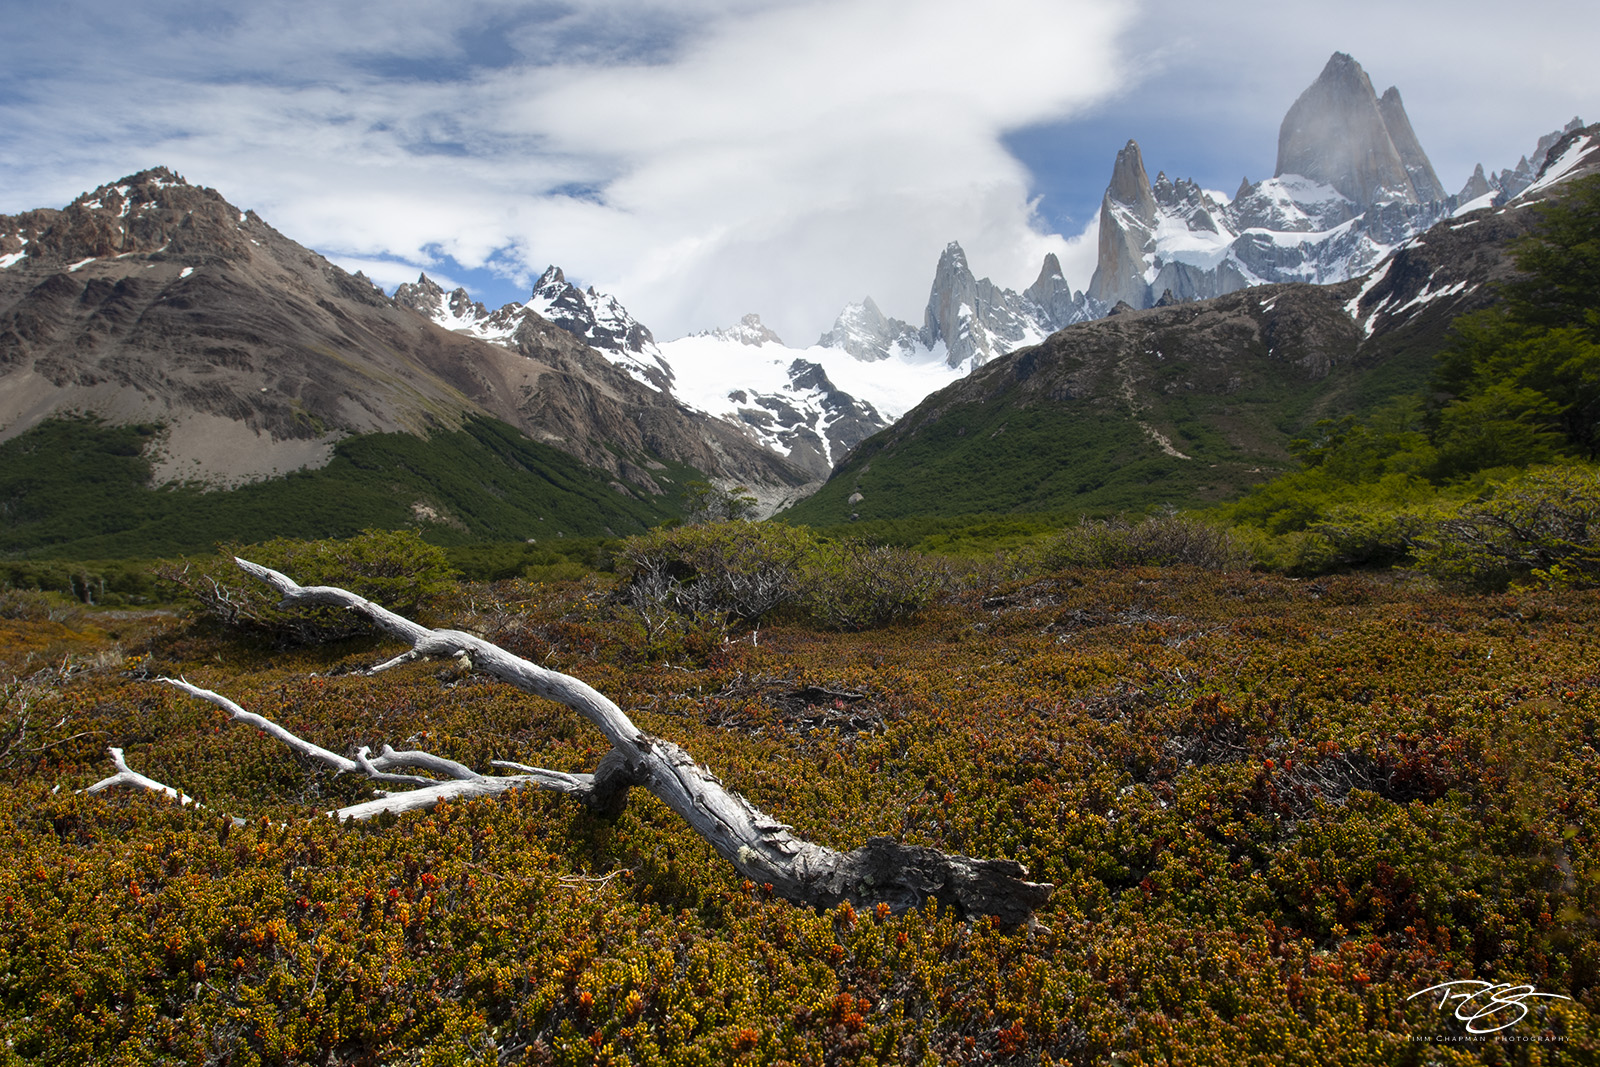 The Towers of Mt Fitzroy rise above the lush alpine valley in Argentina's Patagonia